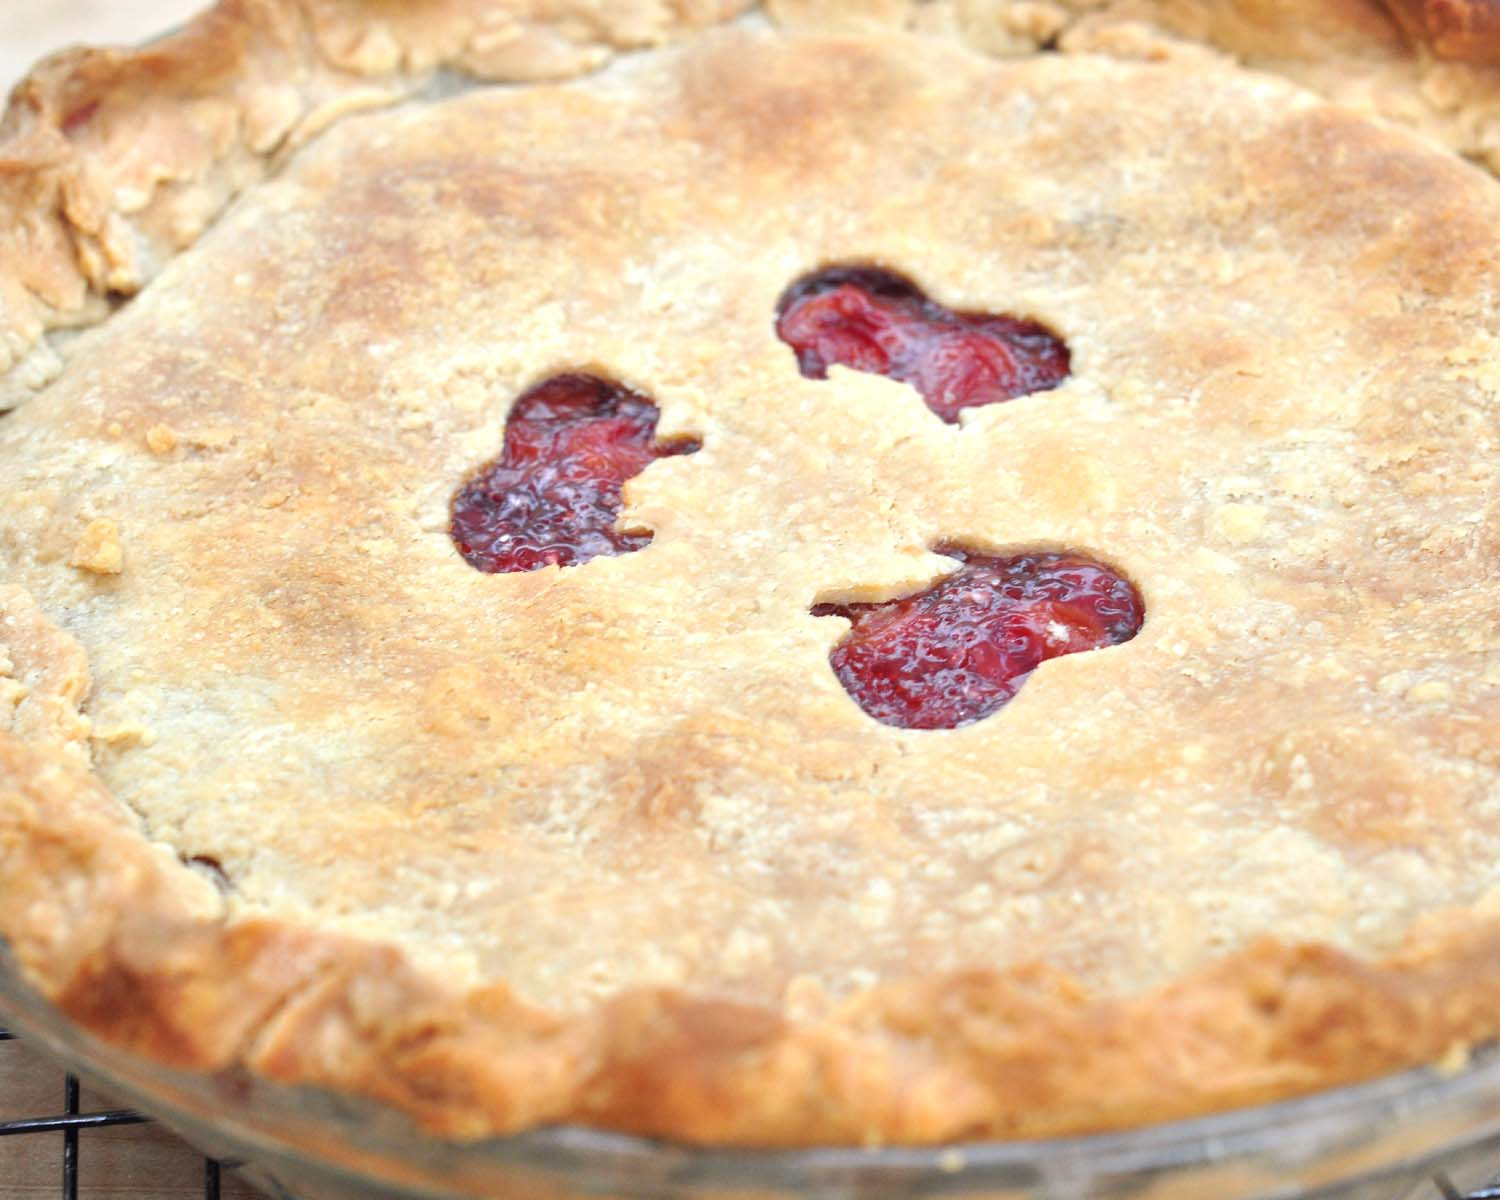 ... my favorite dessert? Well, a close second anyway. I love cherry pie